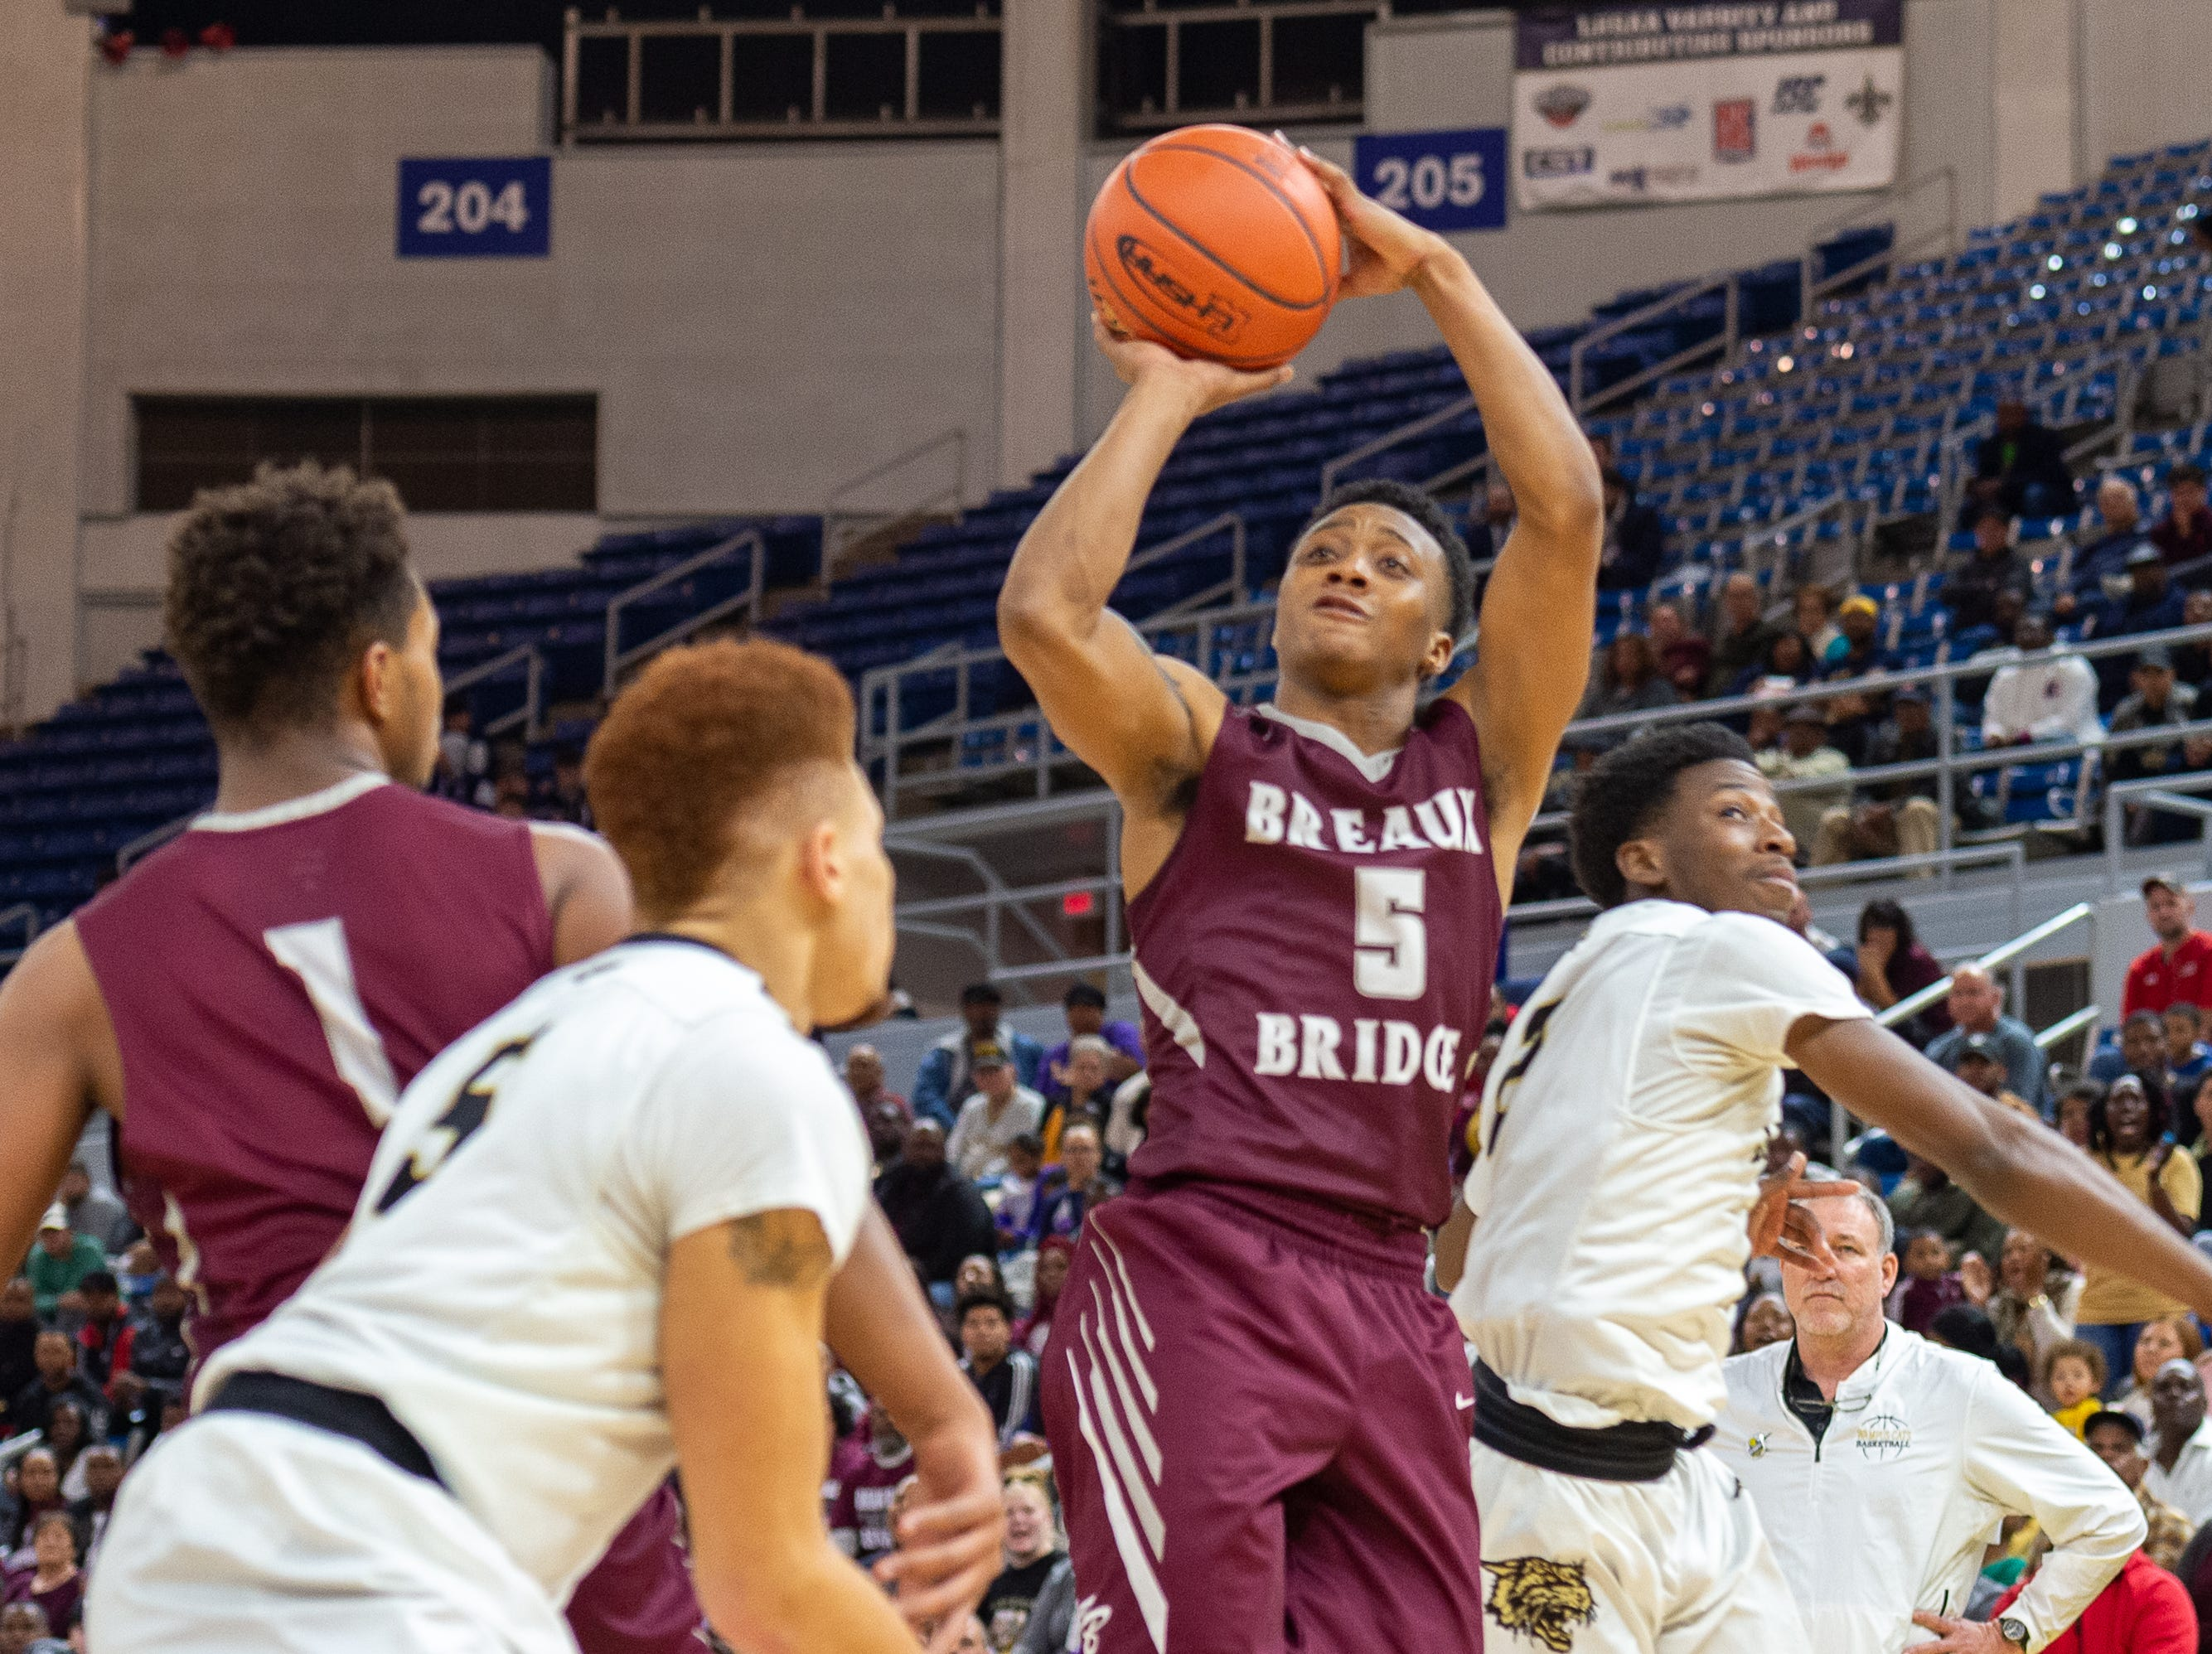 Dartravien Girod takes a shot as Breaux Bridge takes on Leesville in the semi final round of the LHSAA Basketball Championship Tournament. Tuesday, March 5, 2019.